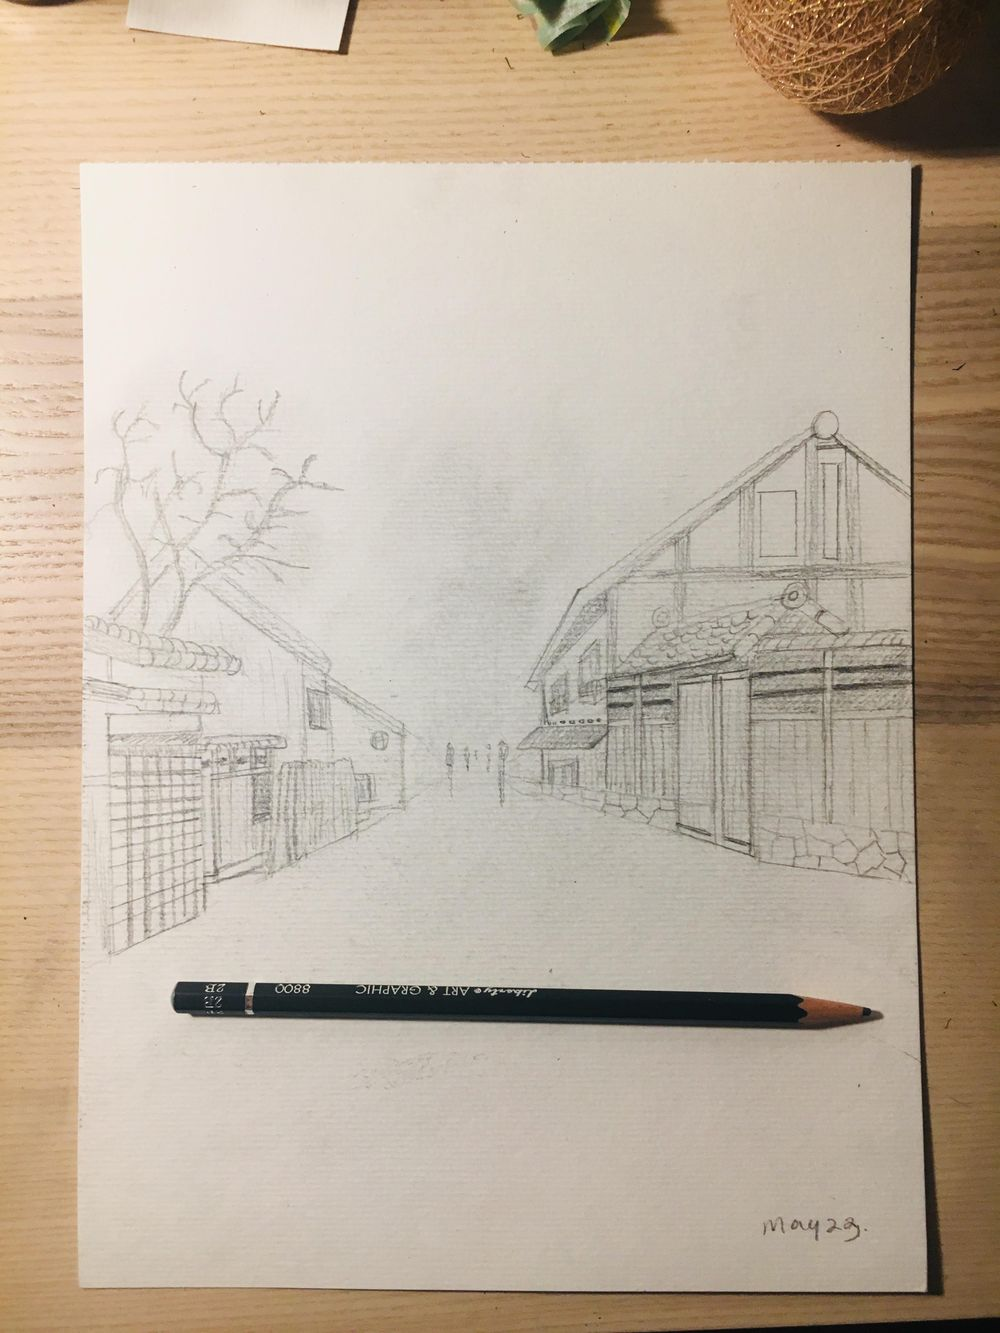 Urban Sketch - 1st attempt - image 1 - student project